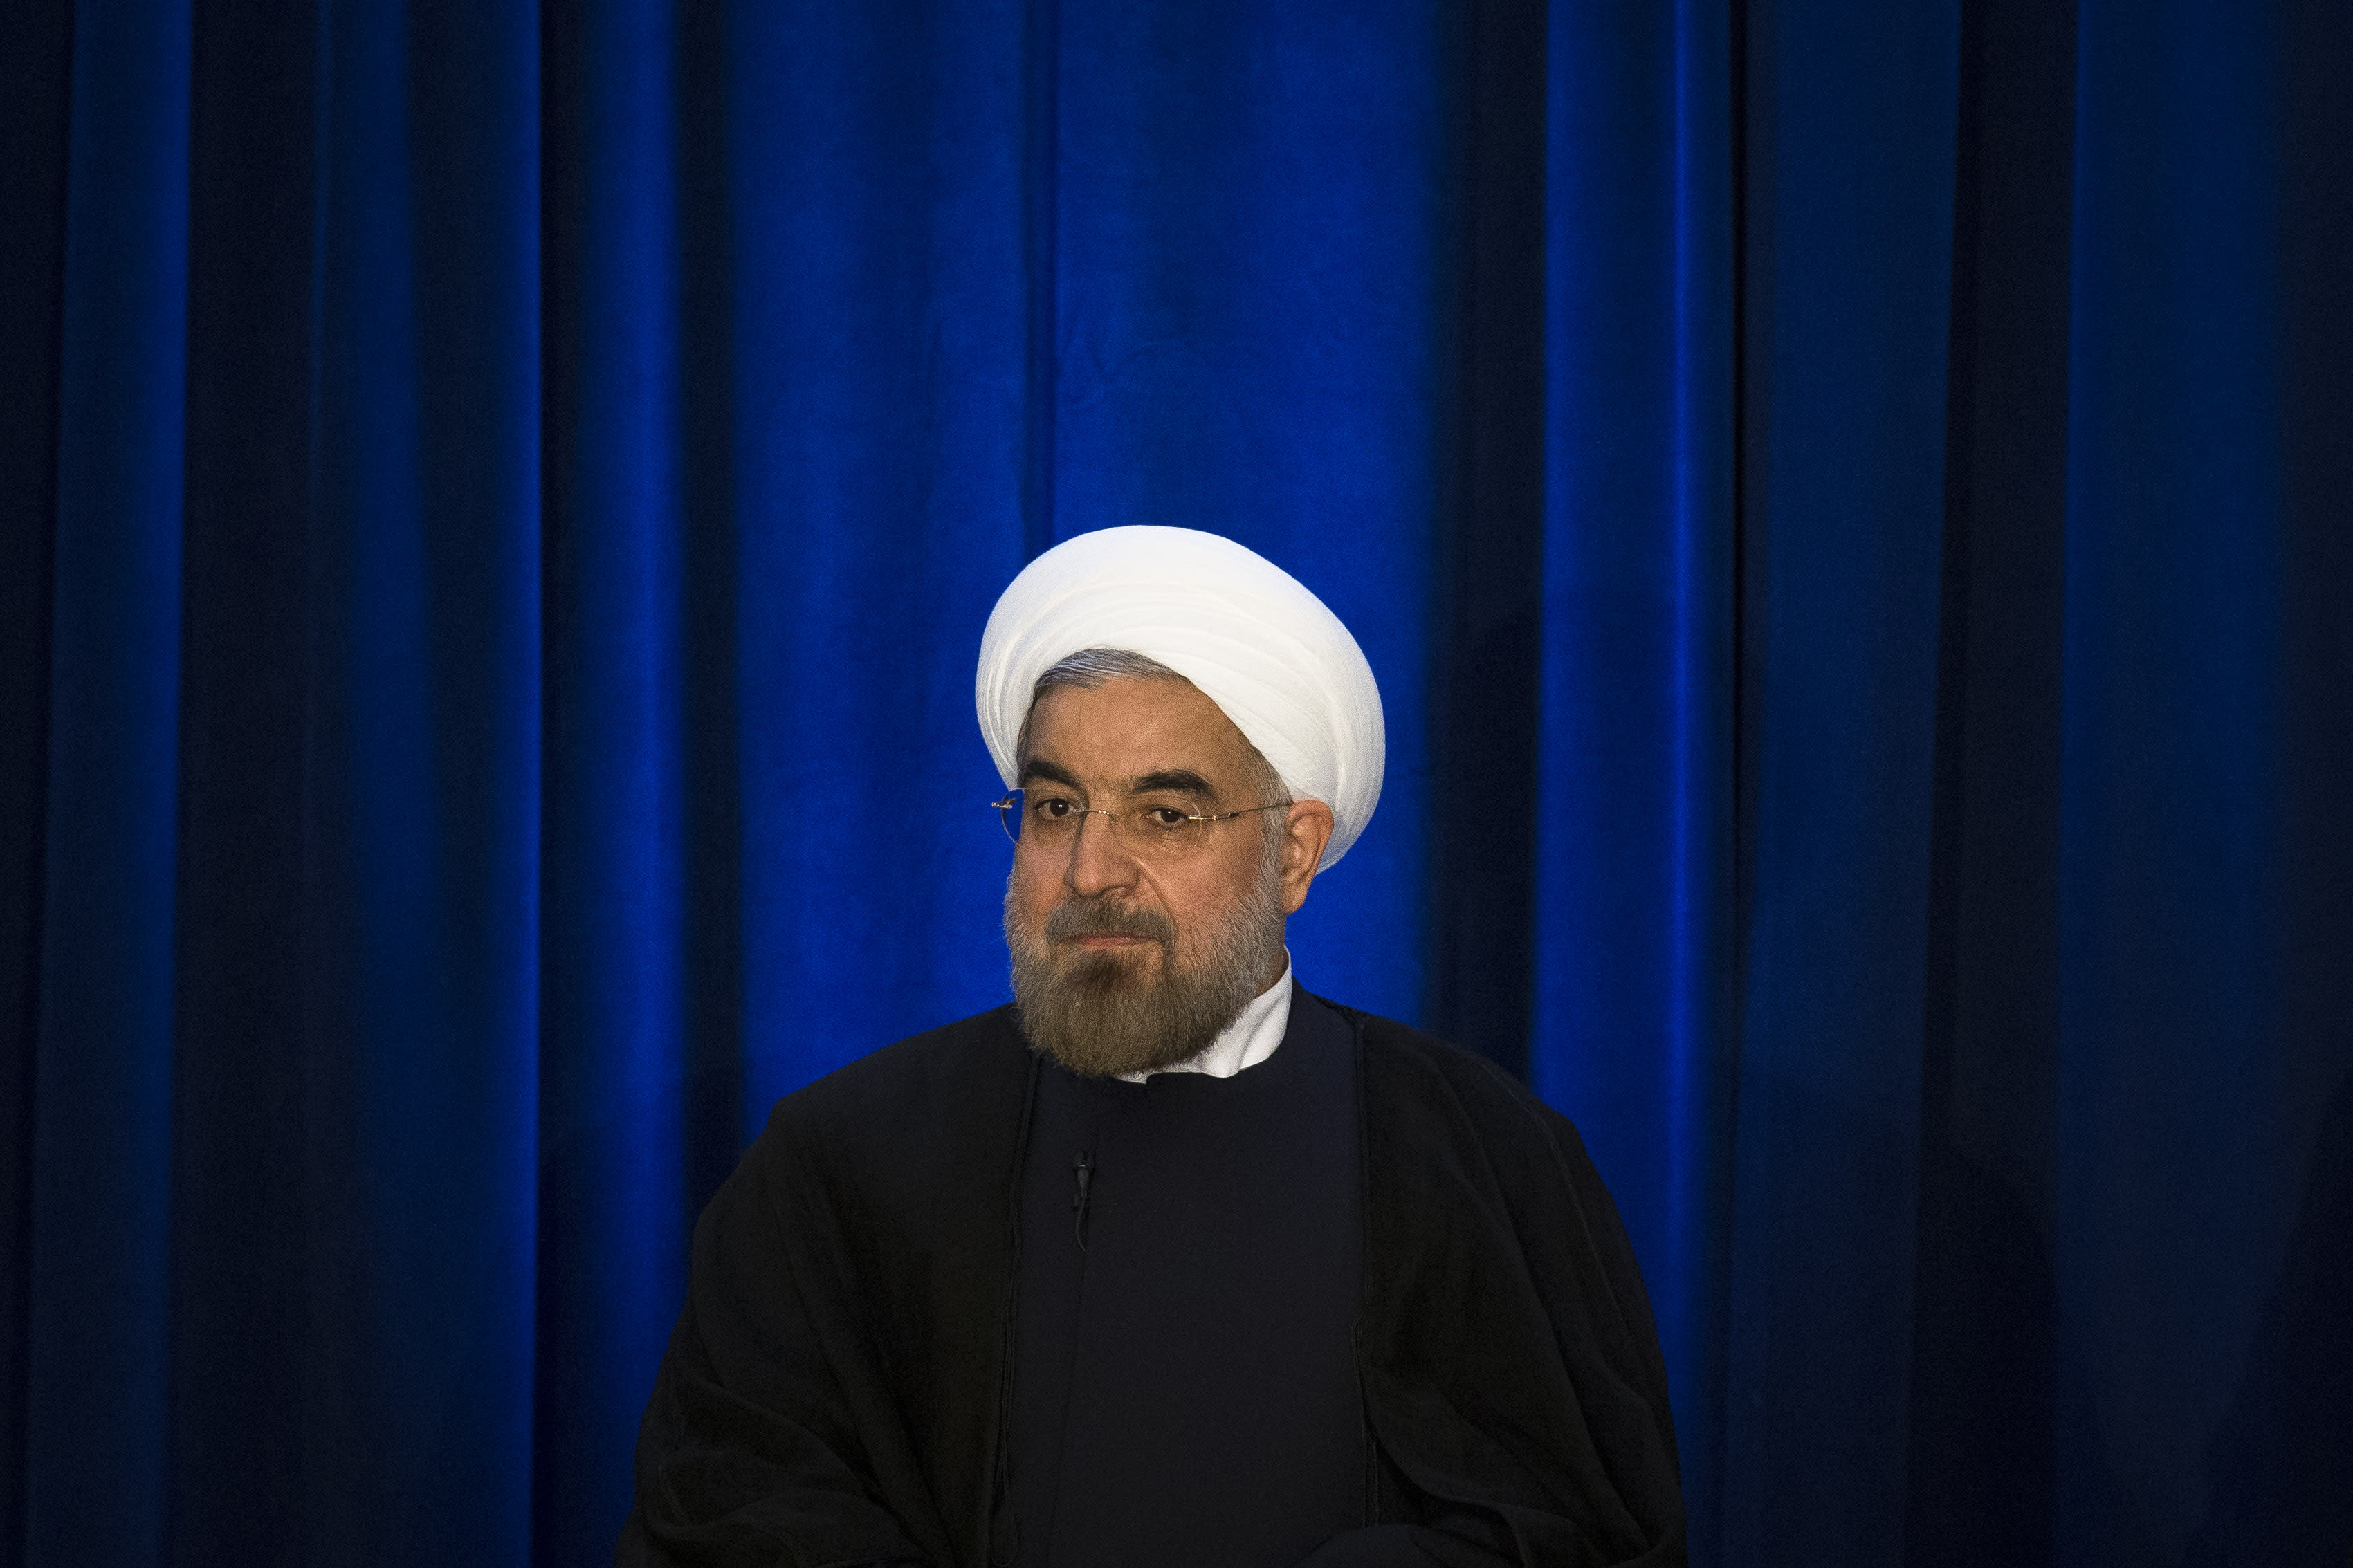 FILE - In this Sept. 26, 2013, file photo, Iranian President Hassan Rouhani waits to speak during an address and discussion hosted by the Asia Society and the Council on Foreign Relations at the Hilton Hotel in New York. The U.S. and Iran secretly engaged in high-level, face-to-face talks, at least three times over the past year, in a high stakes diplomatic gamble by the administration that paved the way for the historic deal aimed at slowing Iran's nuclear program. The last two meetings, held since Rouyhani was inaugurated in August, produced much of the agreement later hammered out in negotiations in Geneva. (AP Photo/John Minchillo, File)